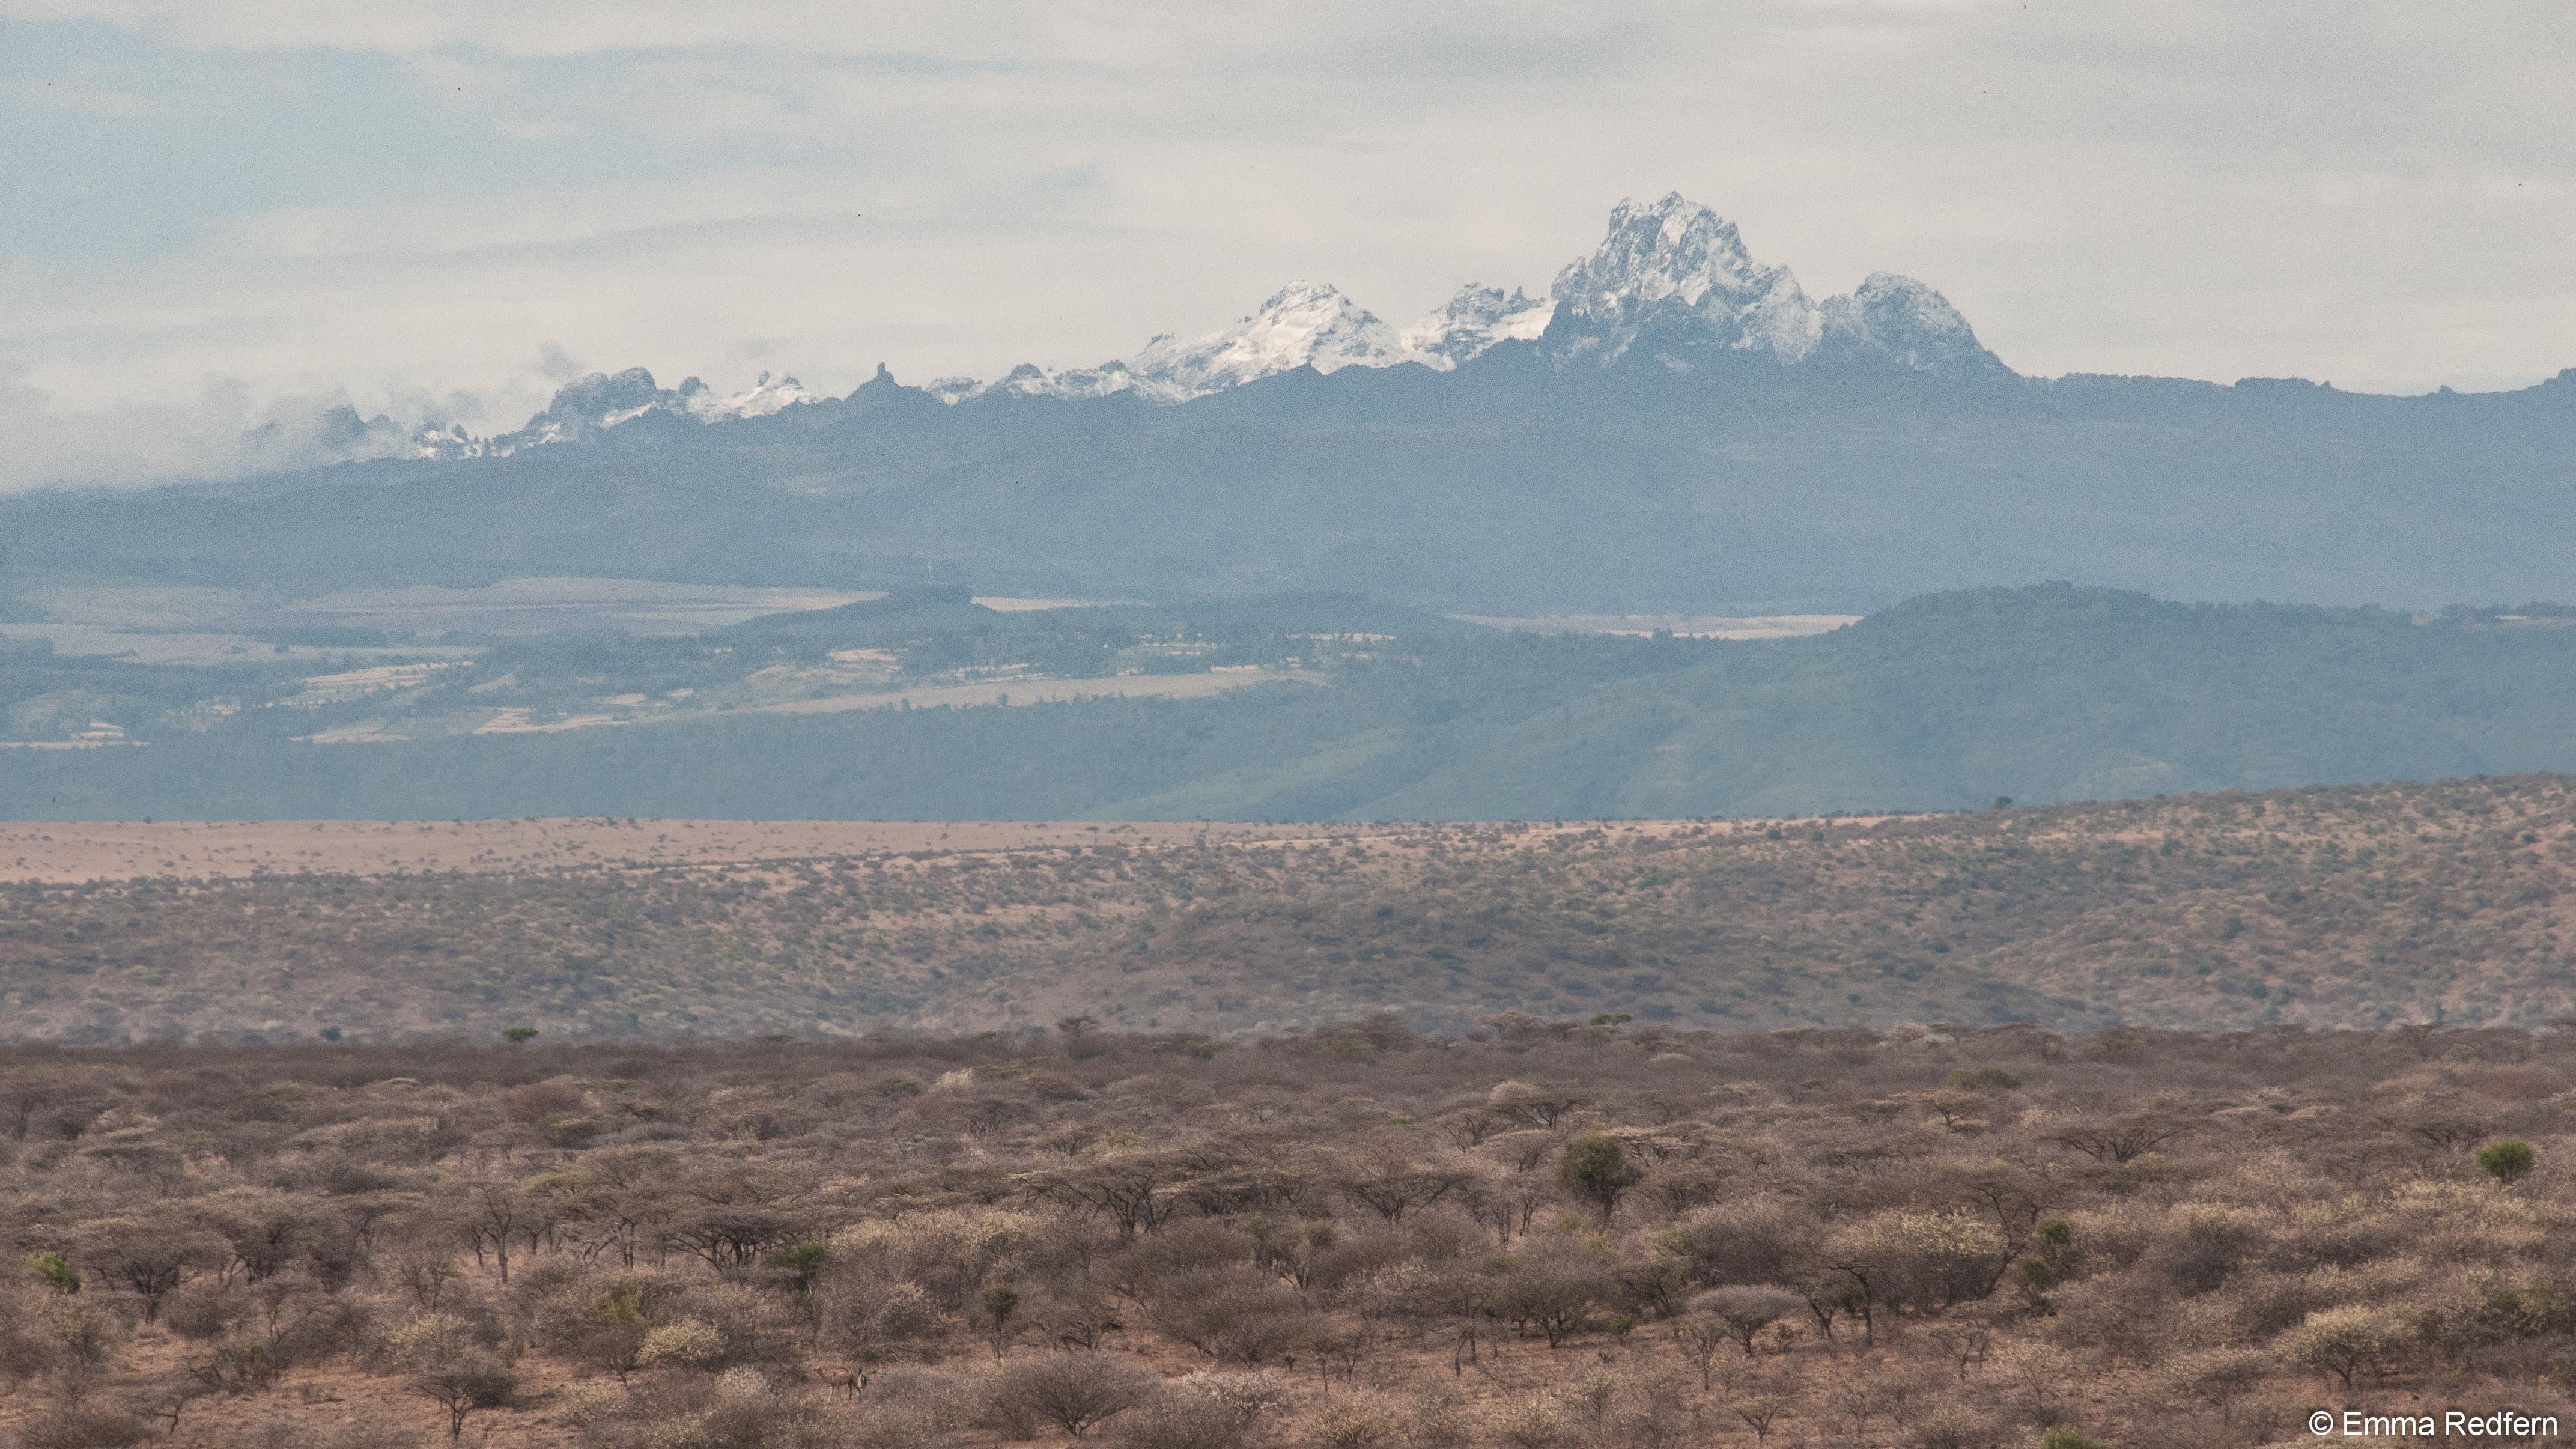 Mount Kenya with Snow